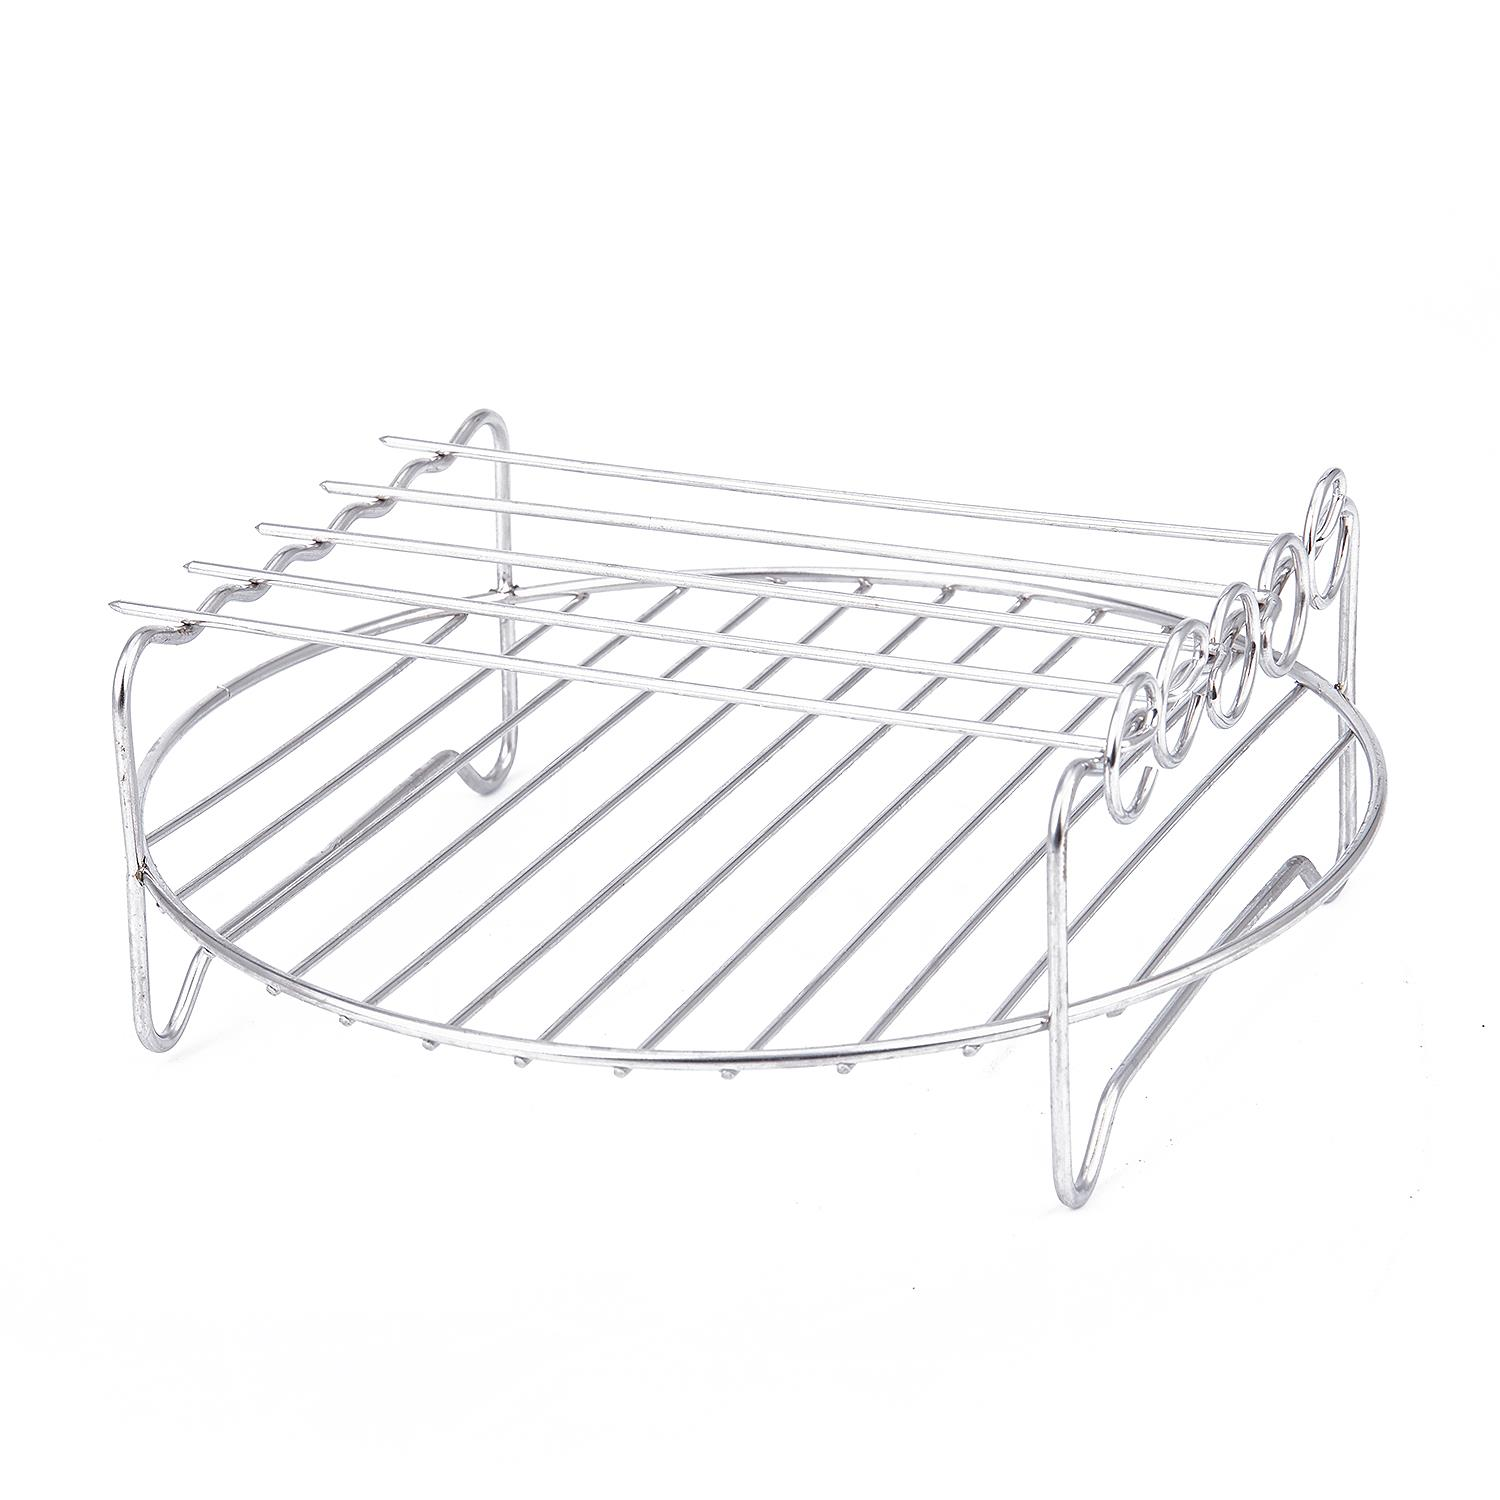 Double Layer Steamers Rack Accessory With 5 Skewers For Airfryers